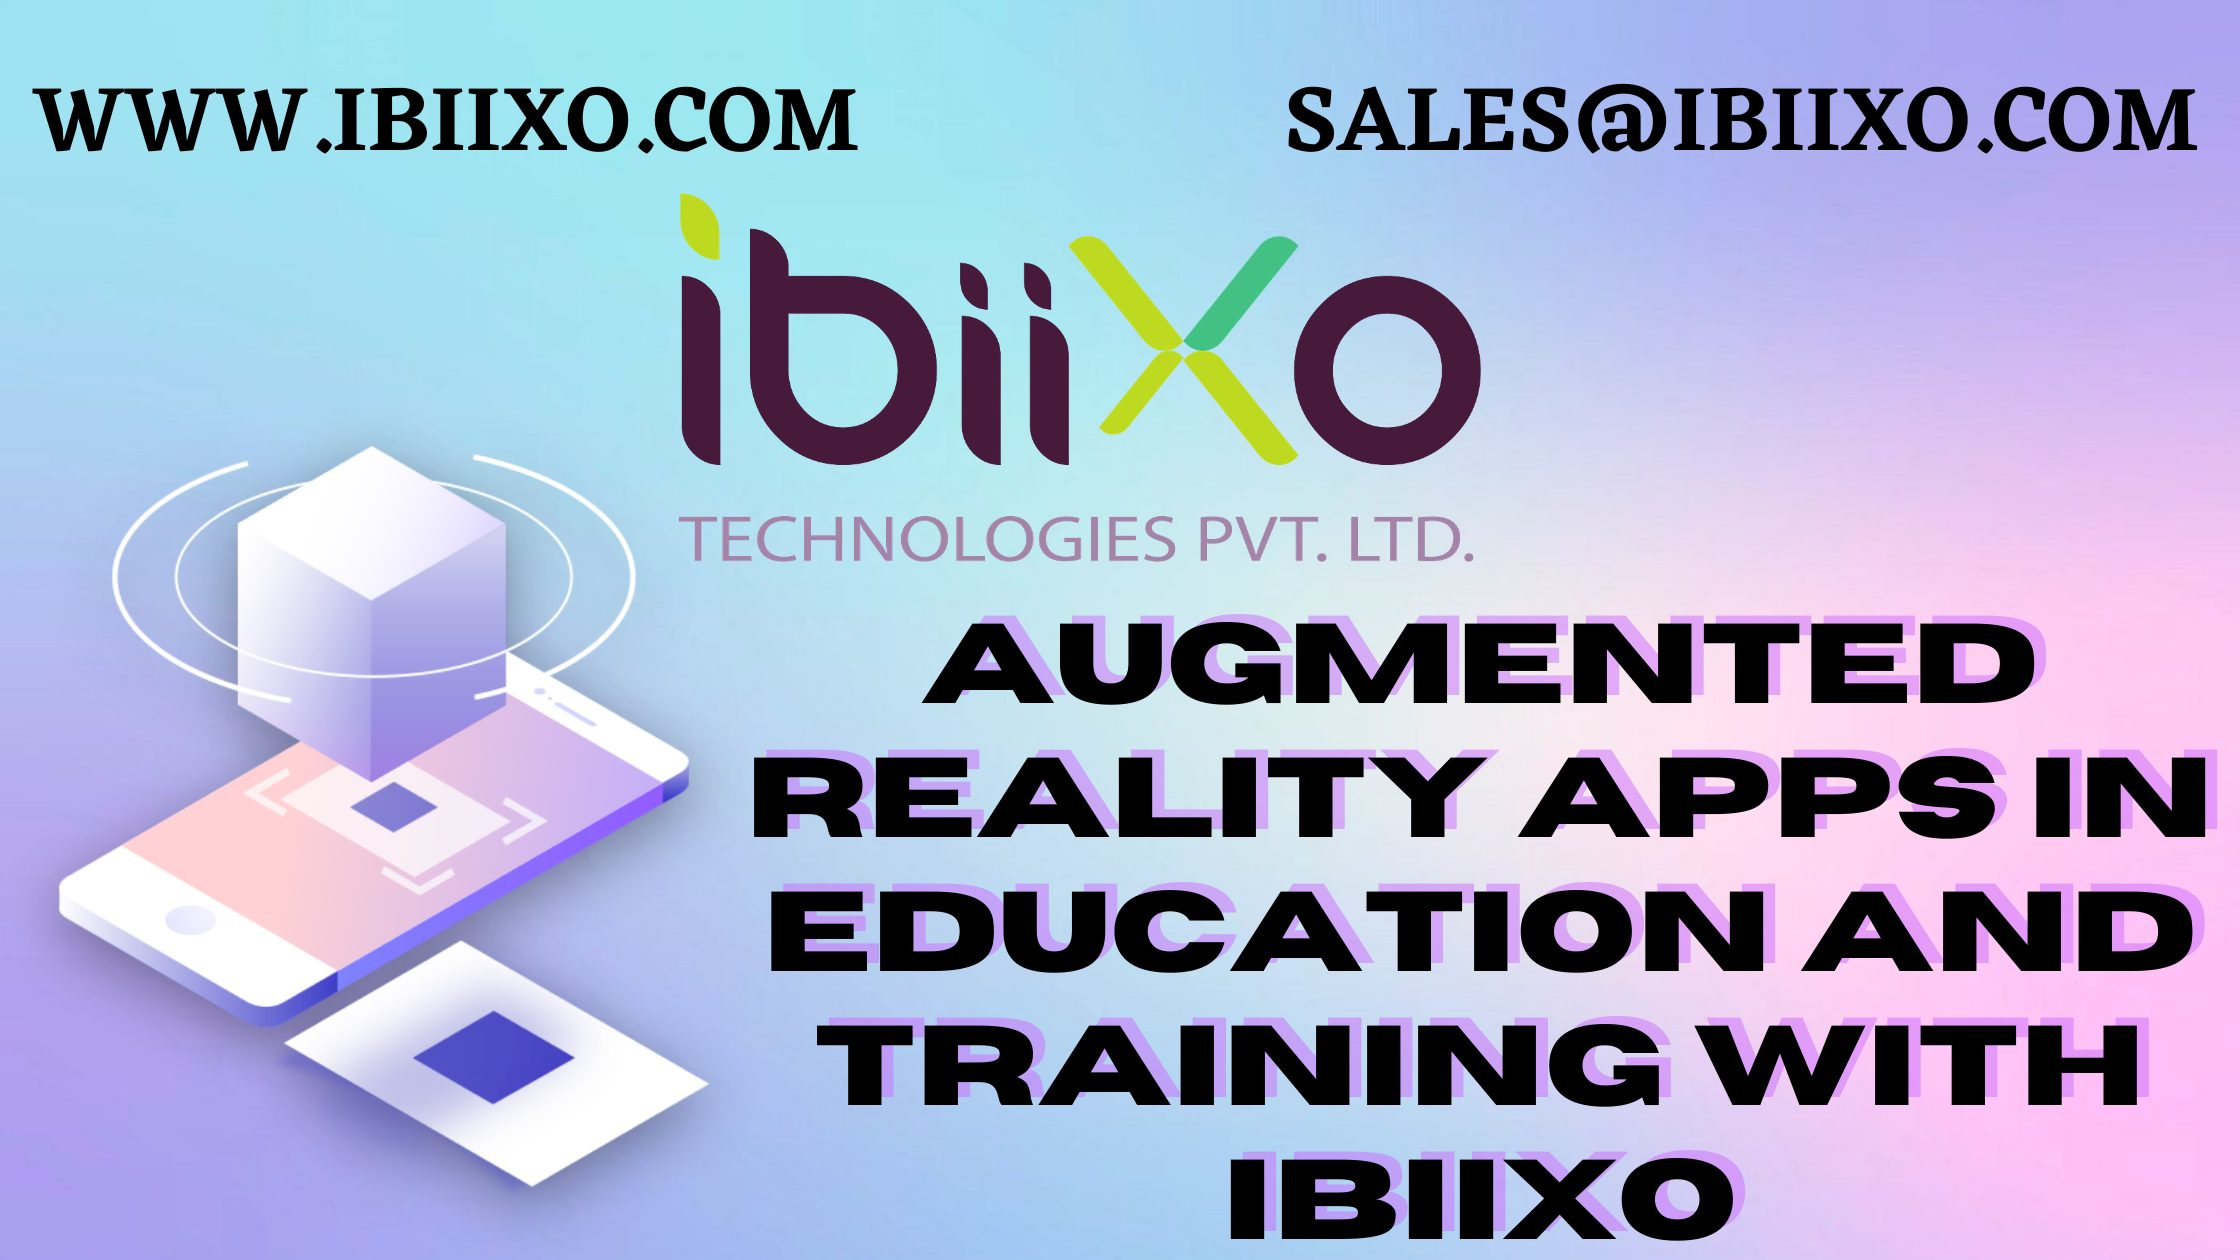 Augmented-Reality-App-in-Education